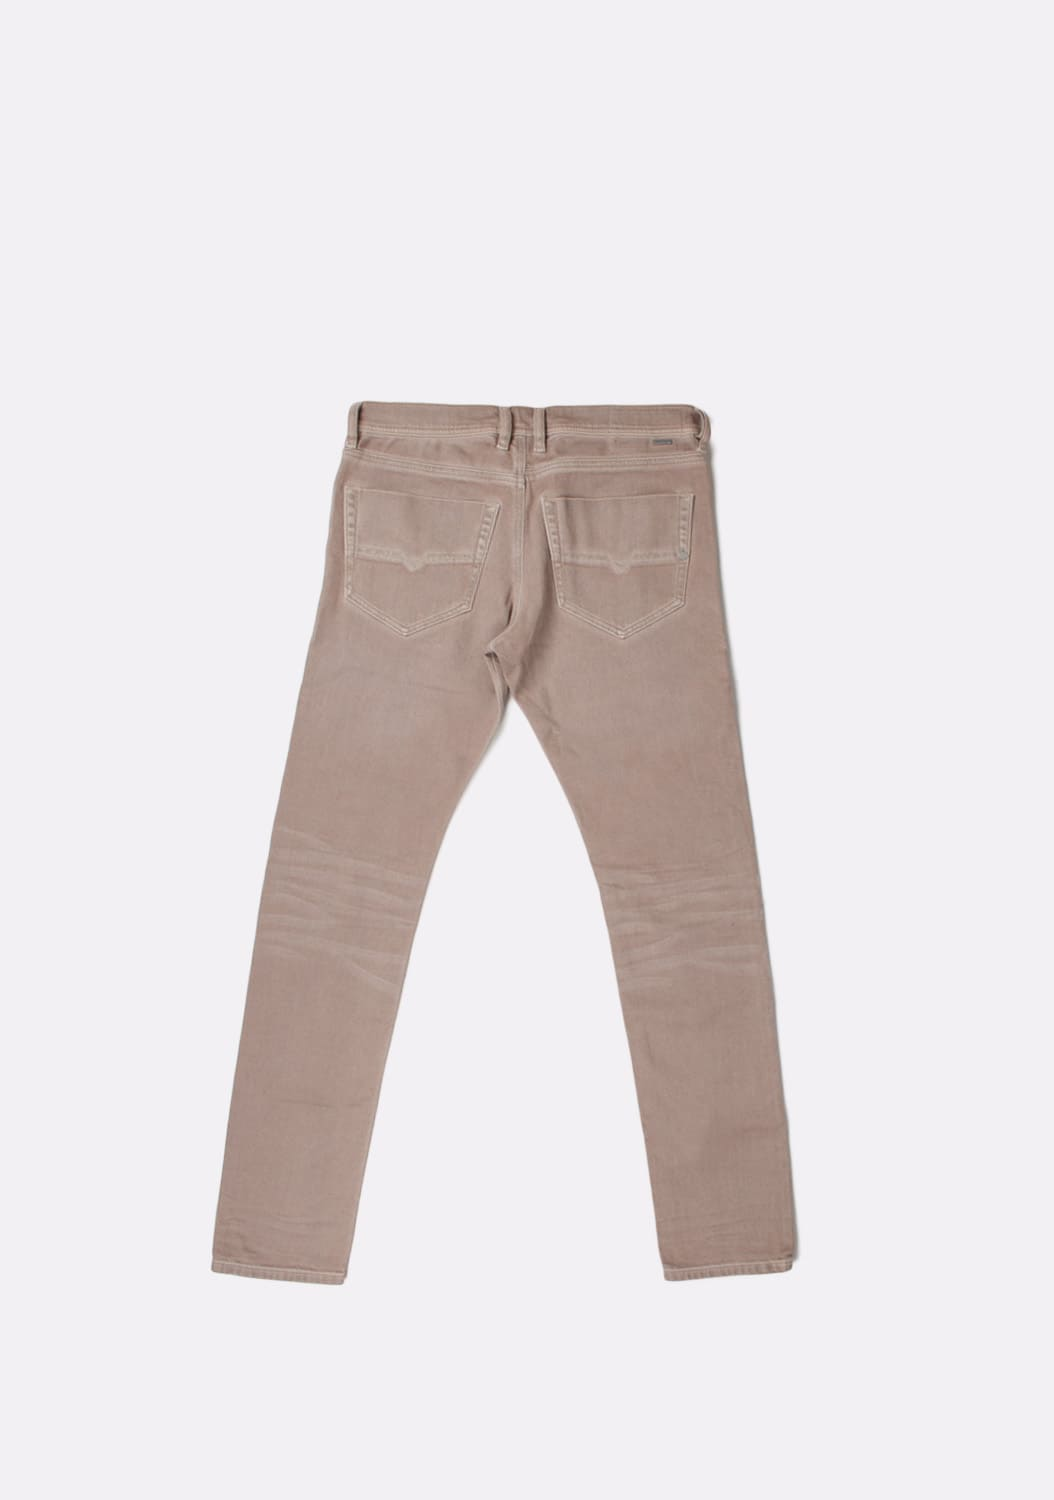 Diesel-Tepphar-0850Y-Stretch-Slim-Carrot-dzinsai-dydis-31 (5)